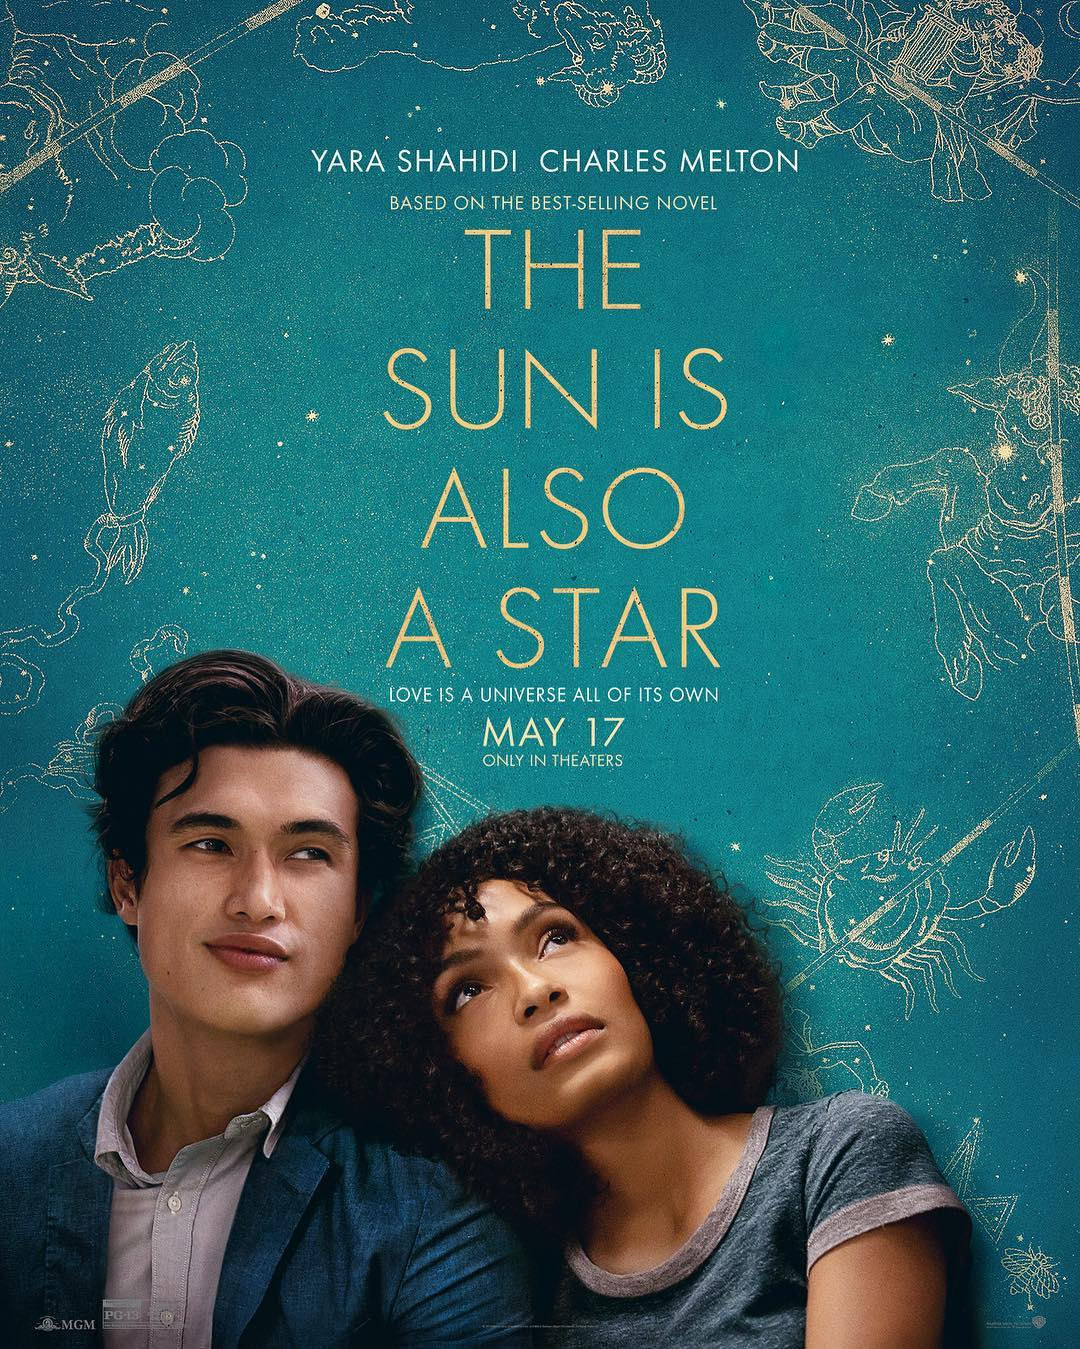 The Sun Is Also A Star Film Releases First Look Photos